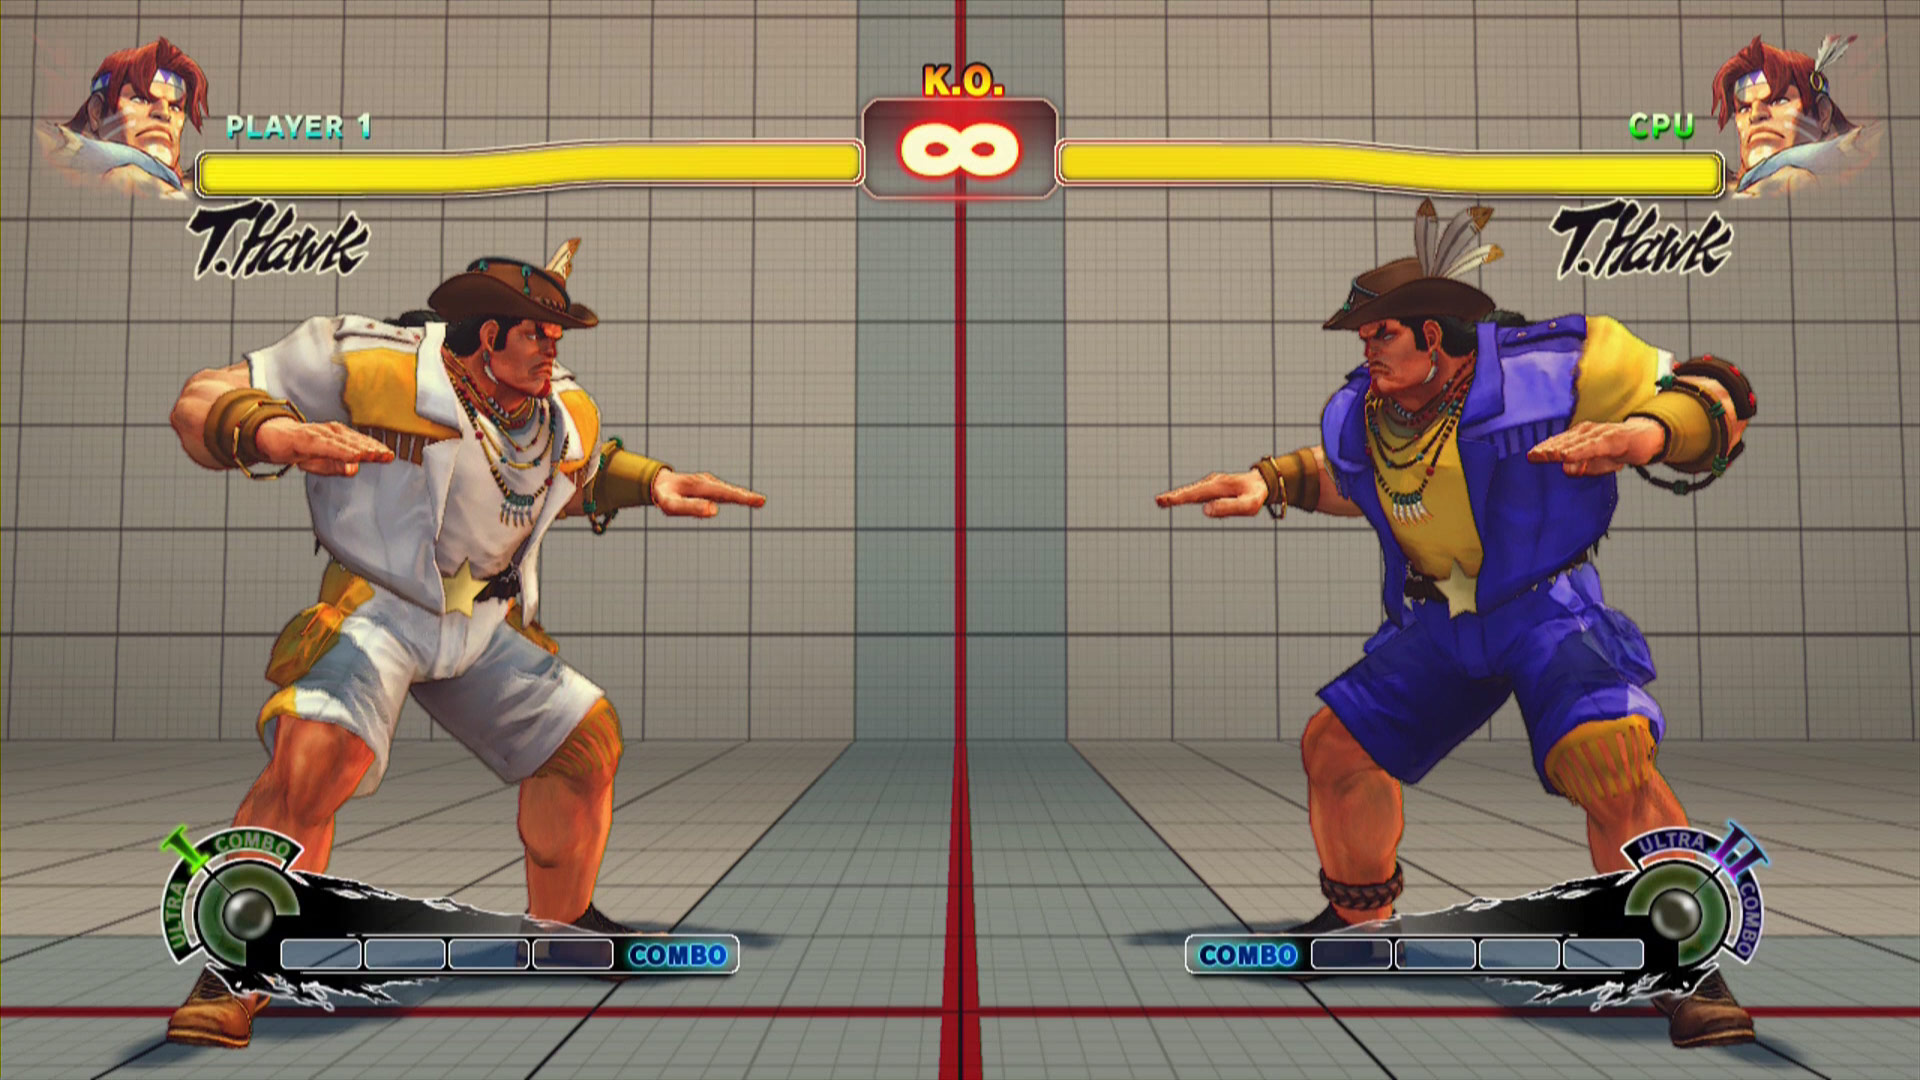 Summer Vacation costume colors in Ultra Street Fighter 4, image #40